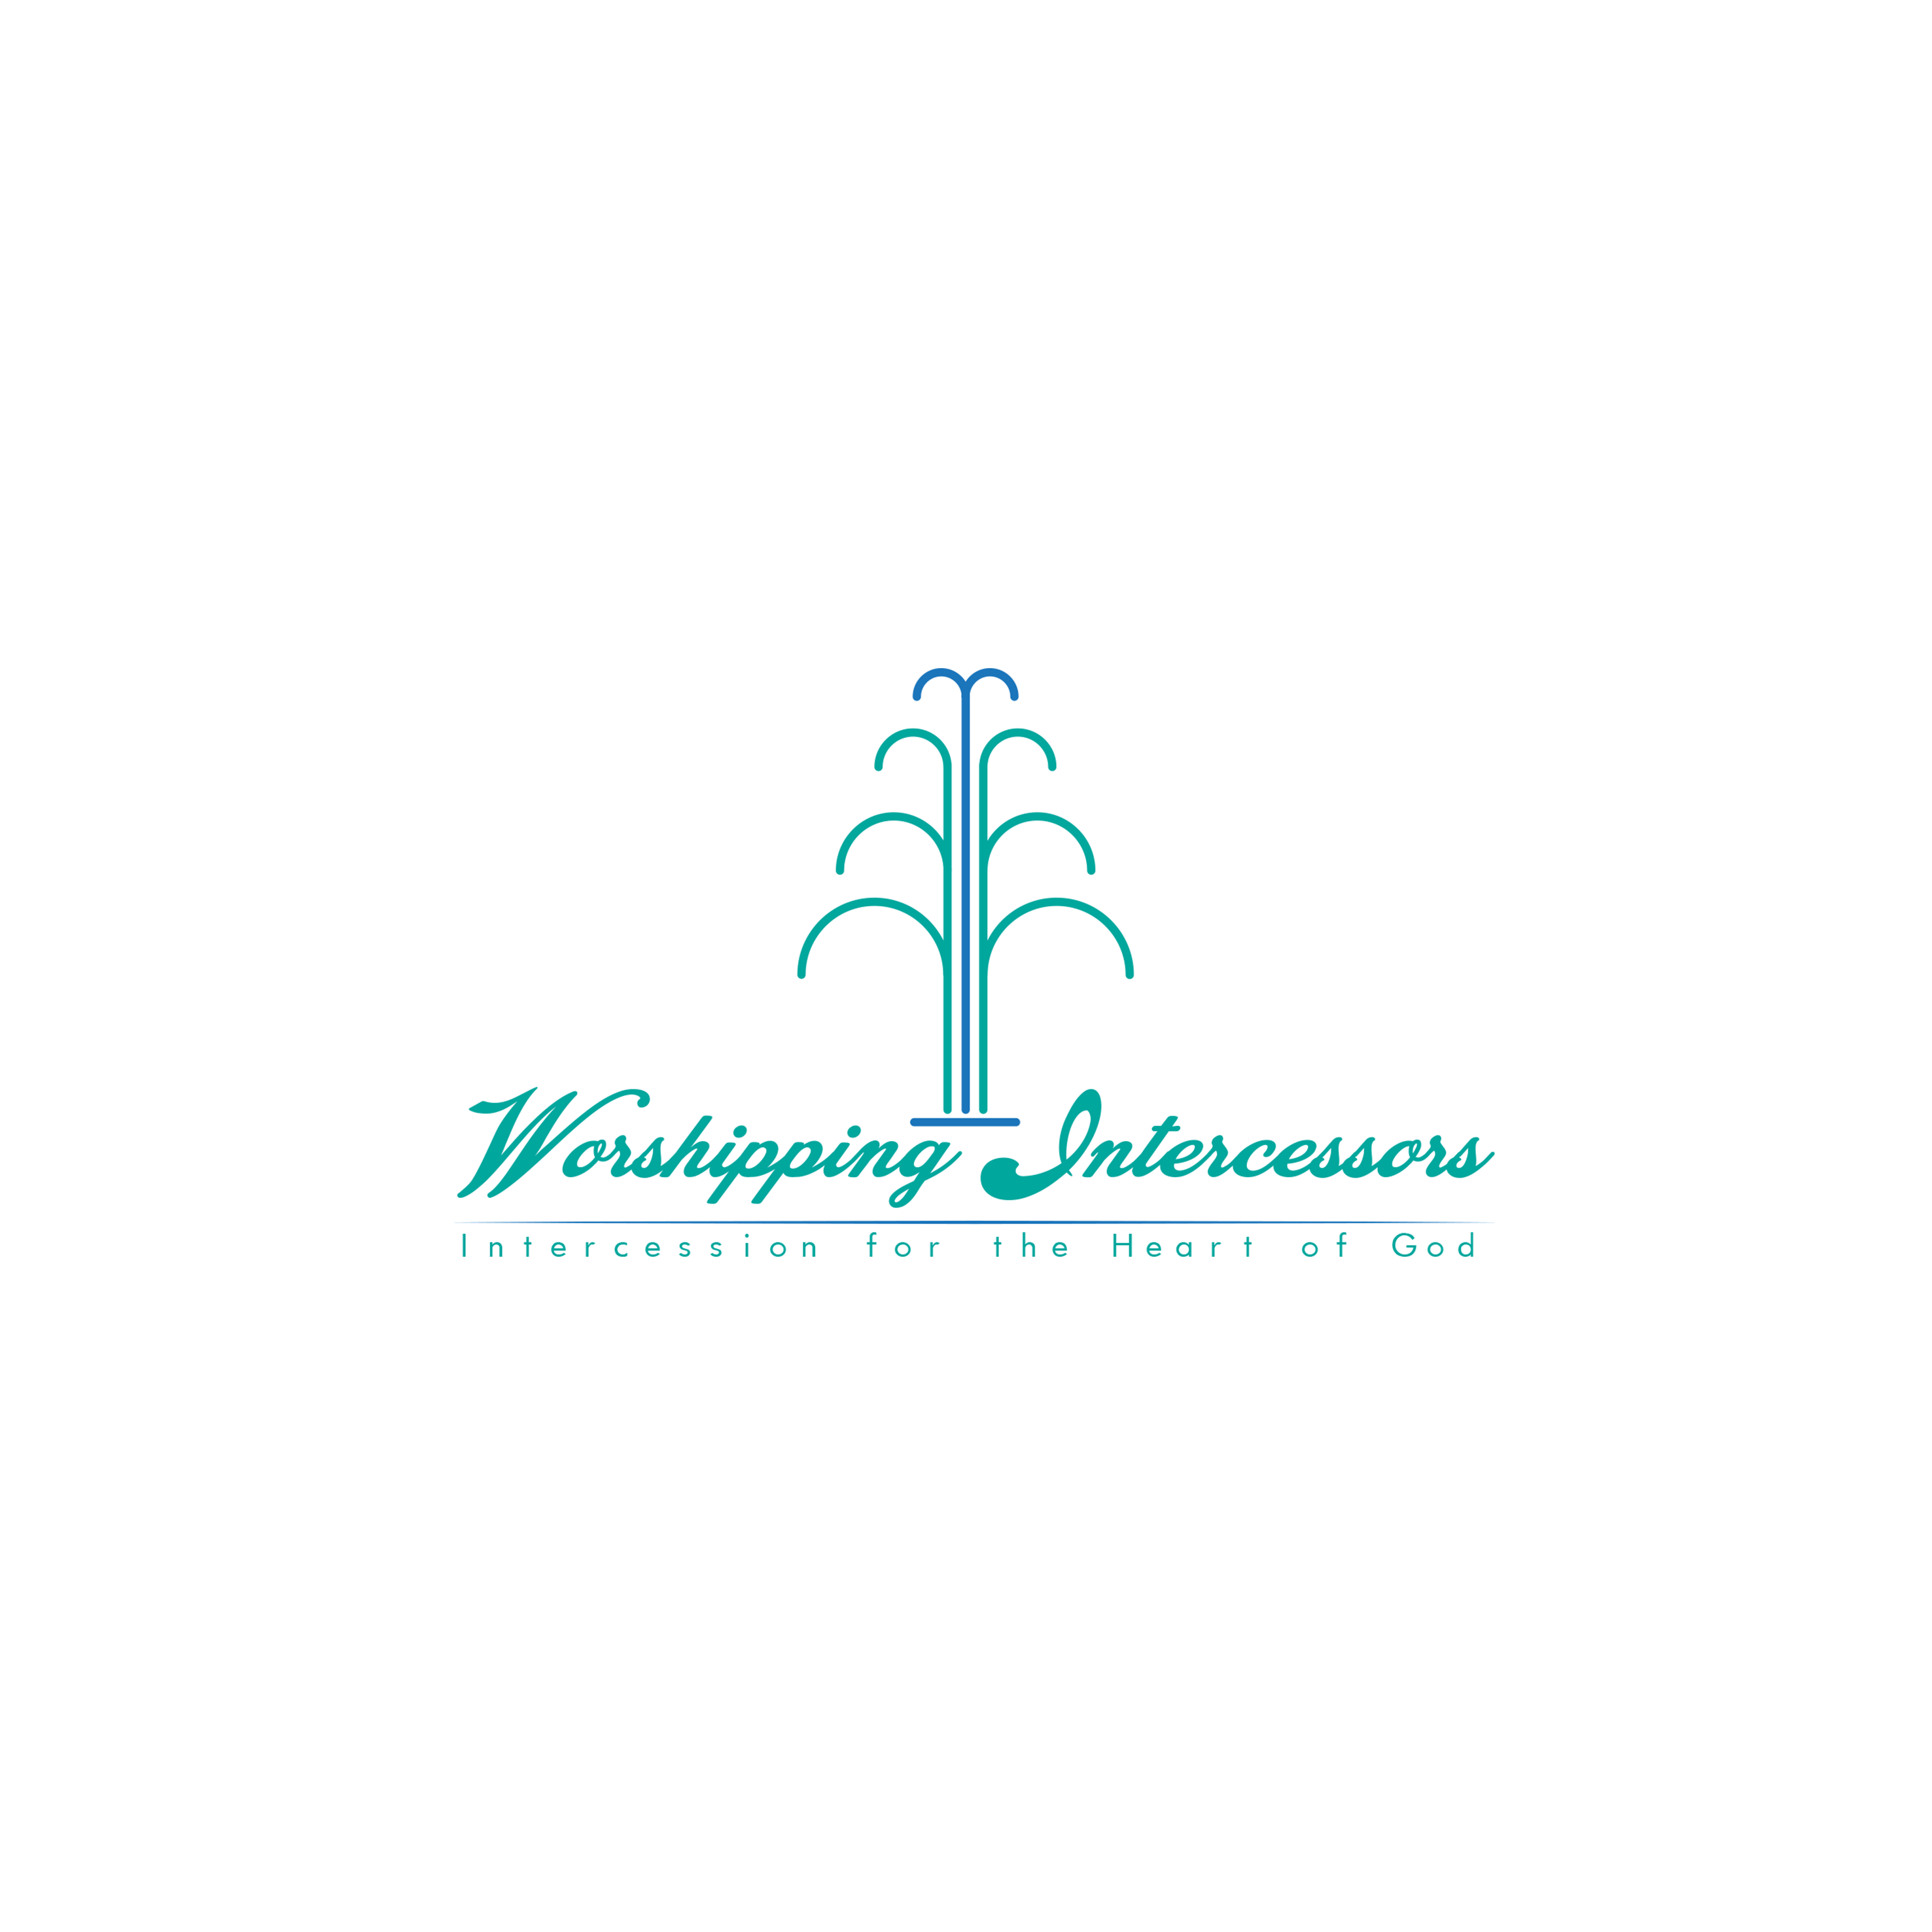 Worshipping Intercessios Logo Design